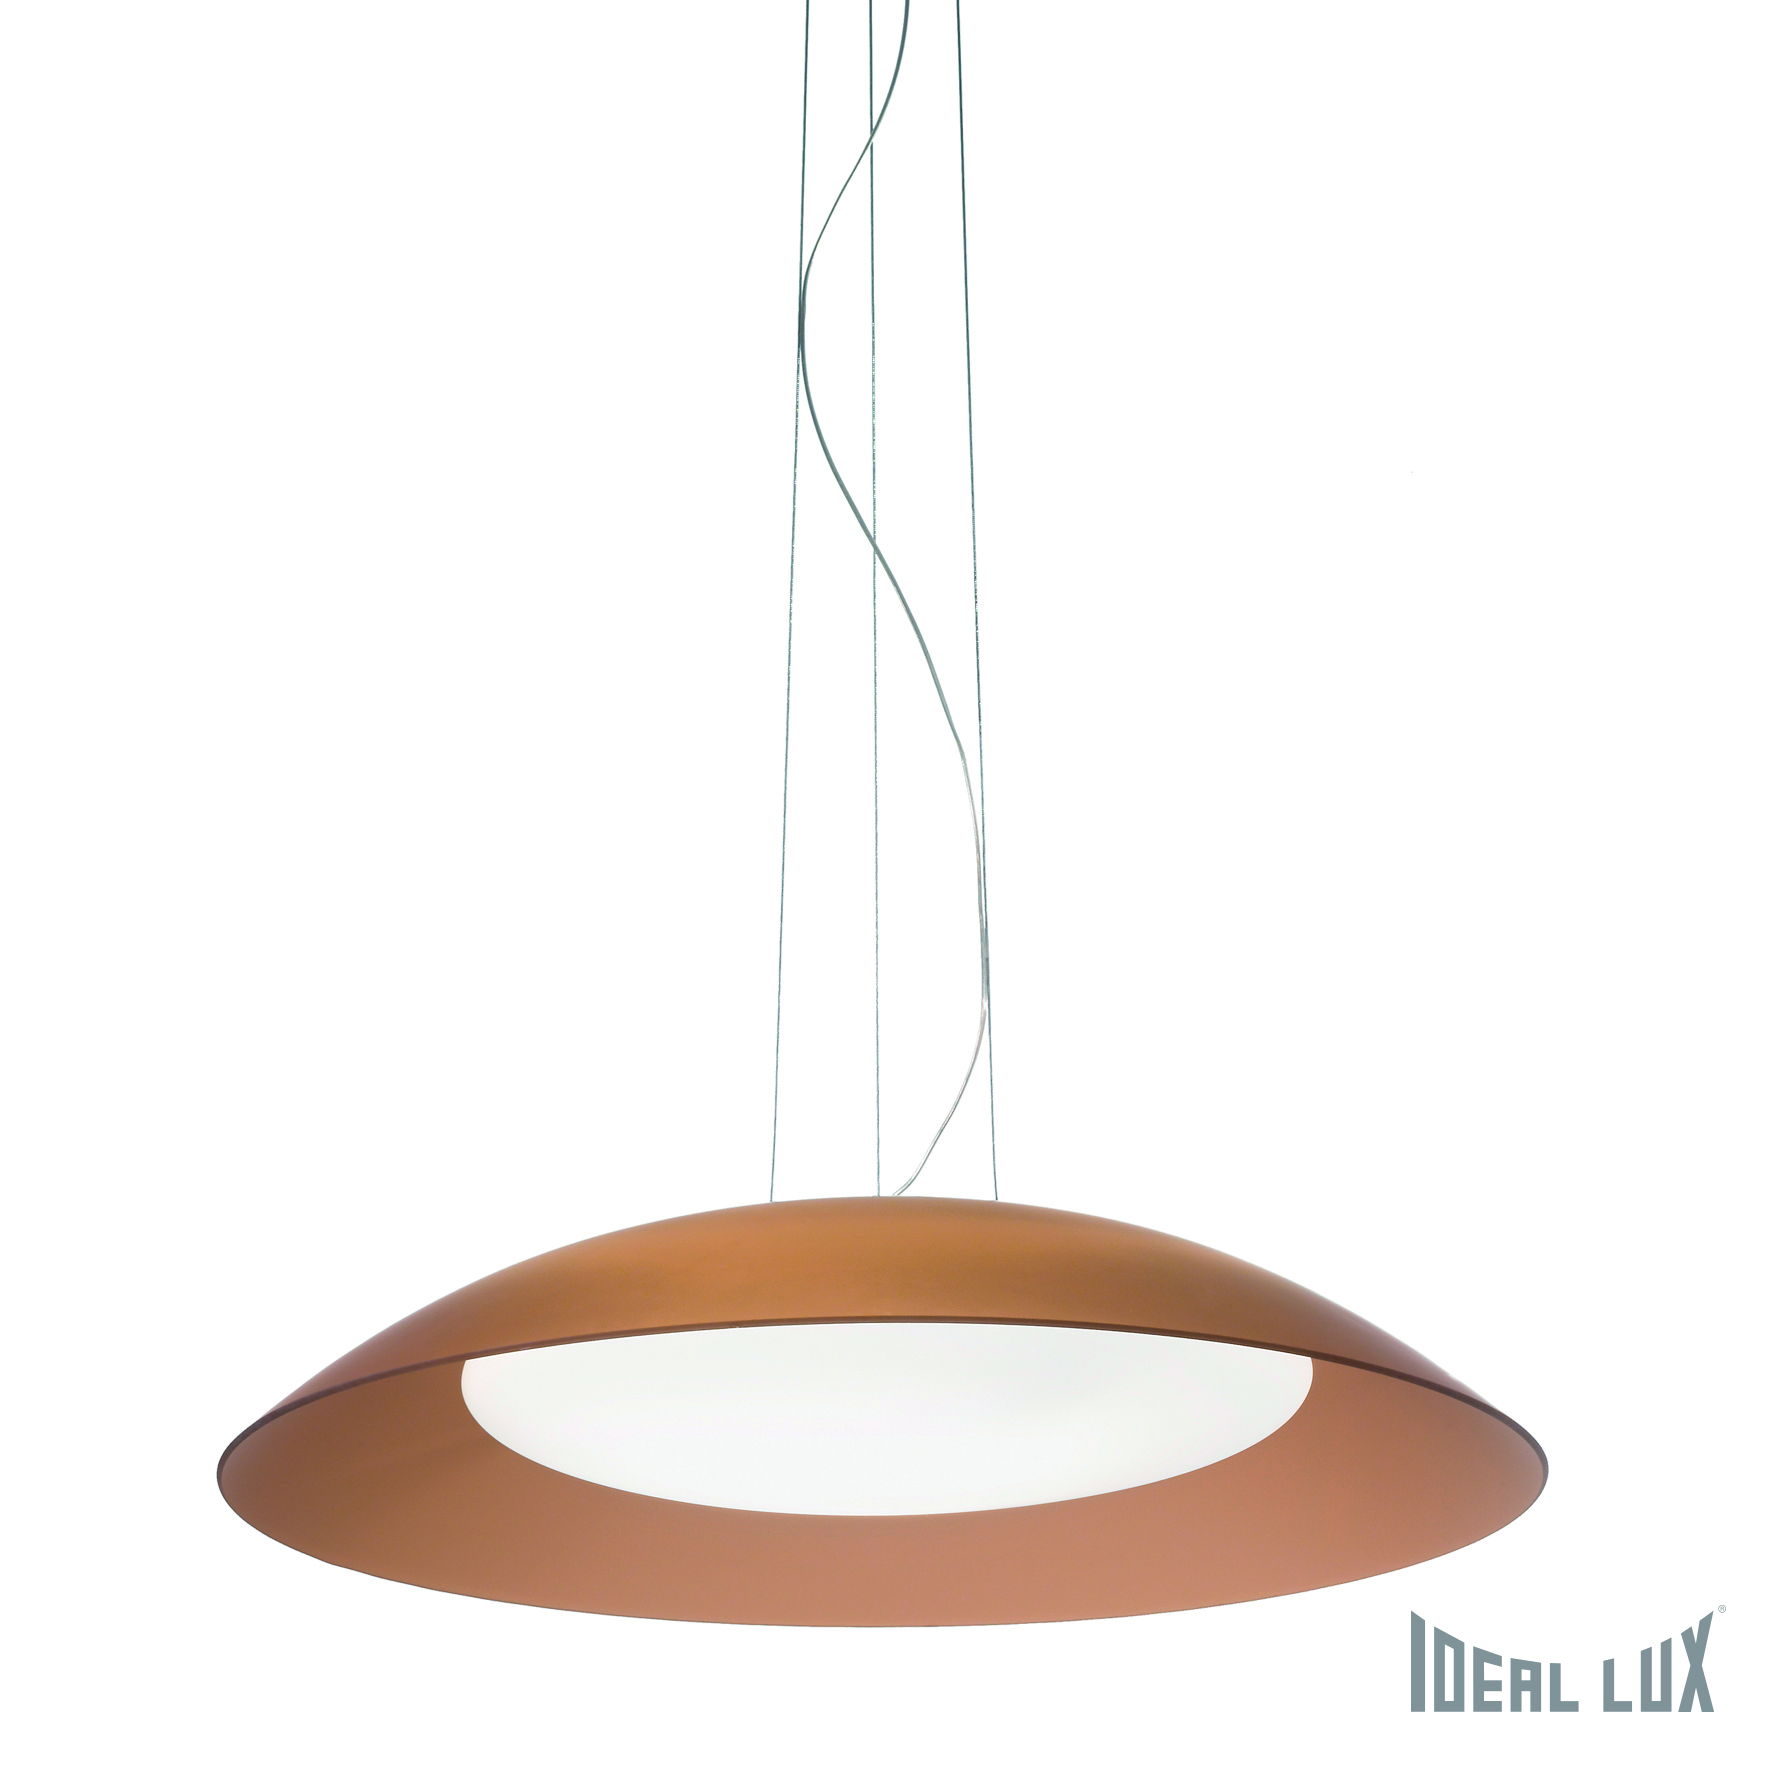 Светильник подвесной Ideal Lux Lena LENA SP3 D64 MARRONE ideal lux люстра ideal lux le roy sp3